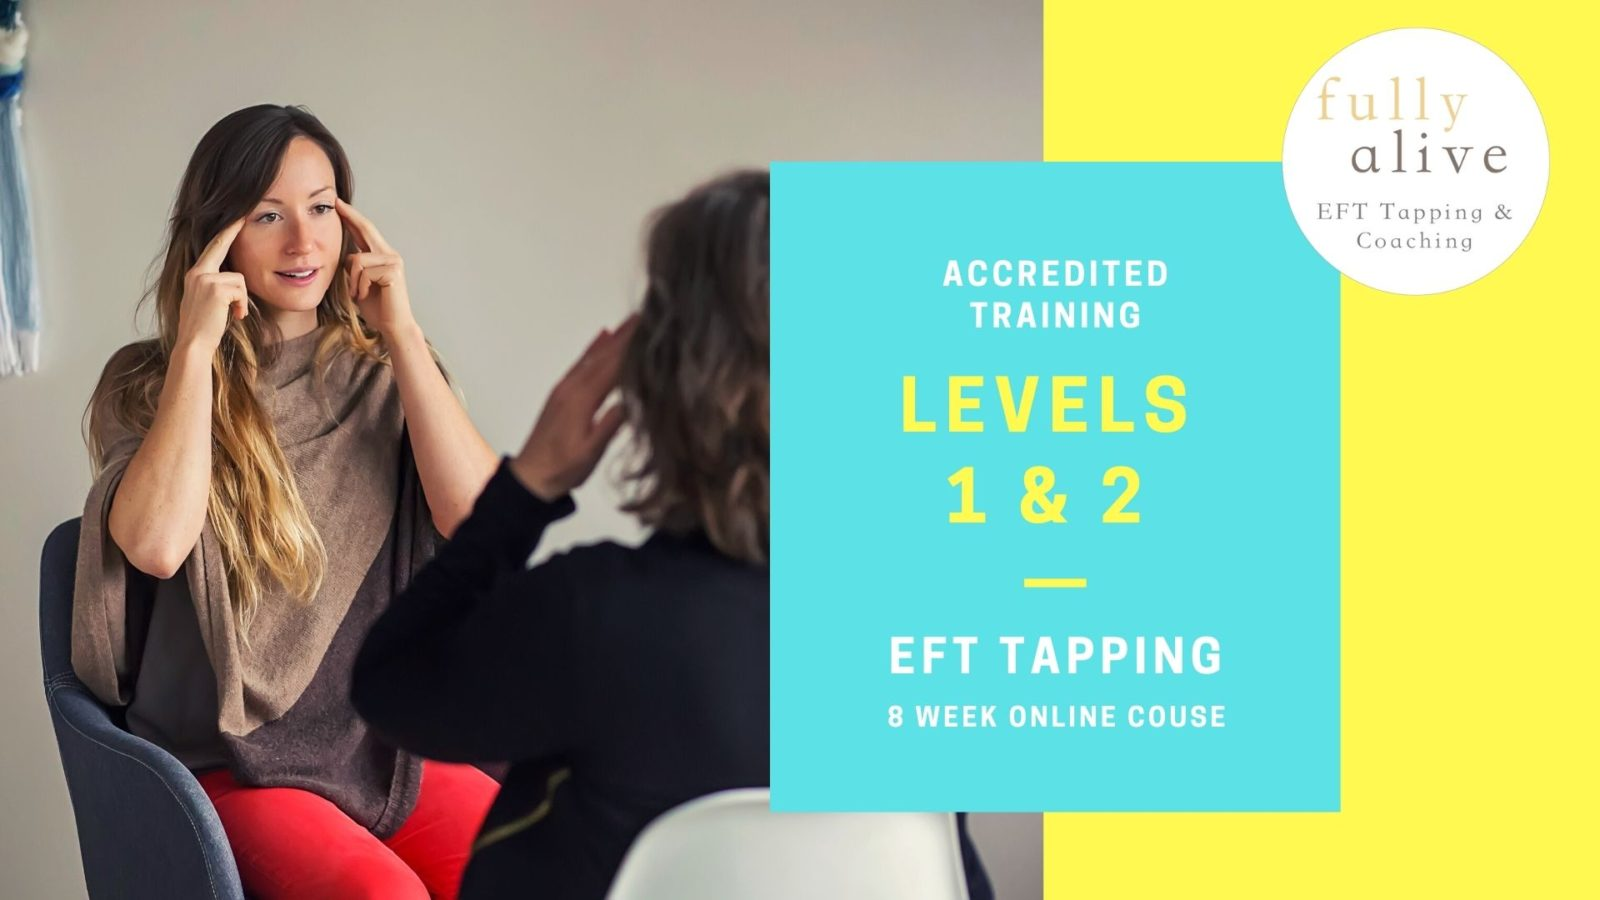 Combined Level 1 & 2 EFT Tapping Training Poster - 8 Week Online Tapping Course